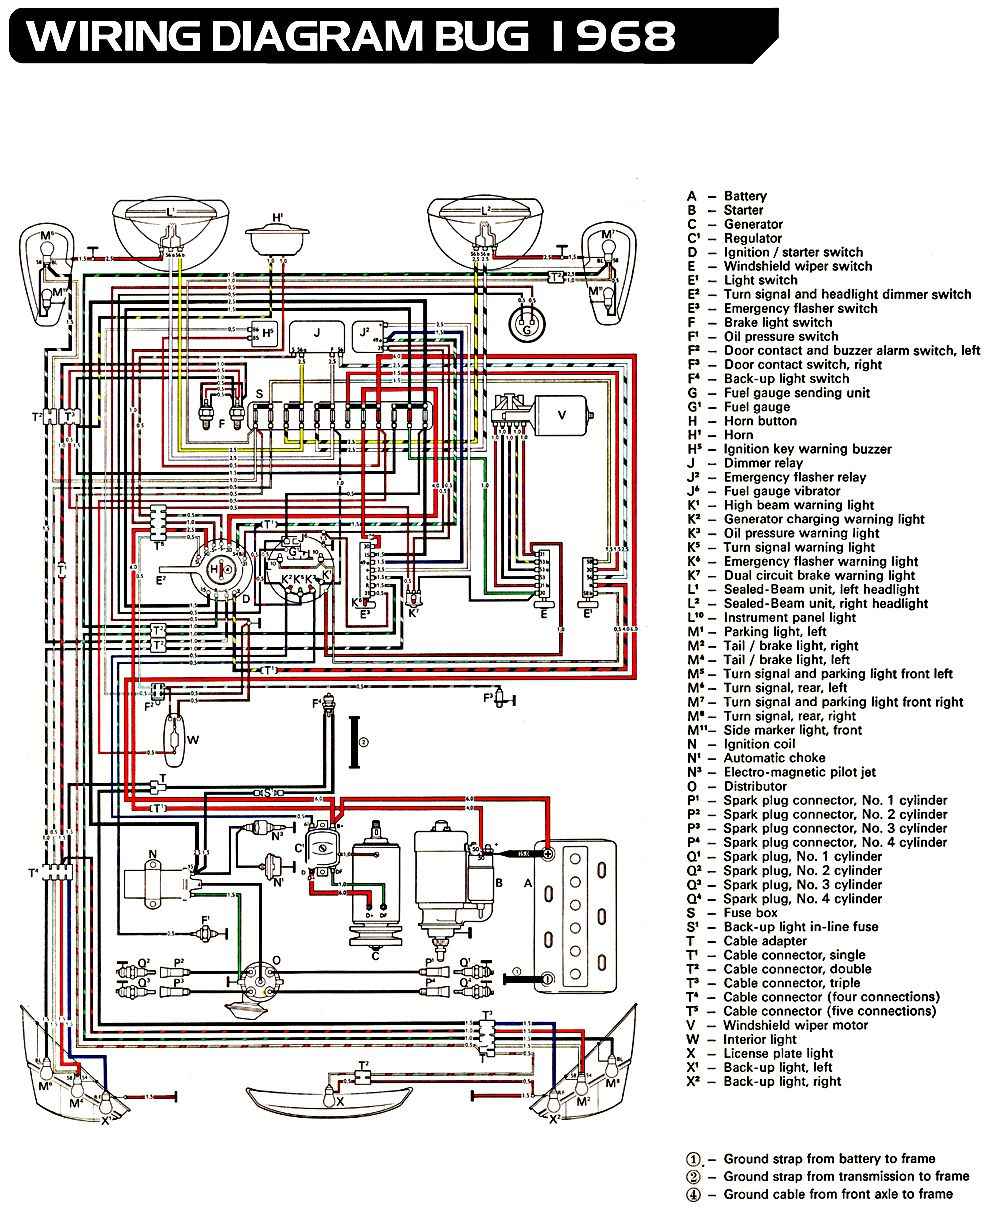 vw bug ignition wiring diagram 73 vw wiring diagram free vw volkswagen new beetle wiring schematics [ 996 x 1211 Pixel ]